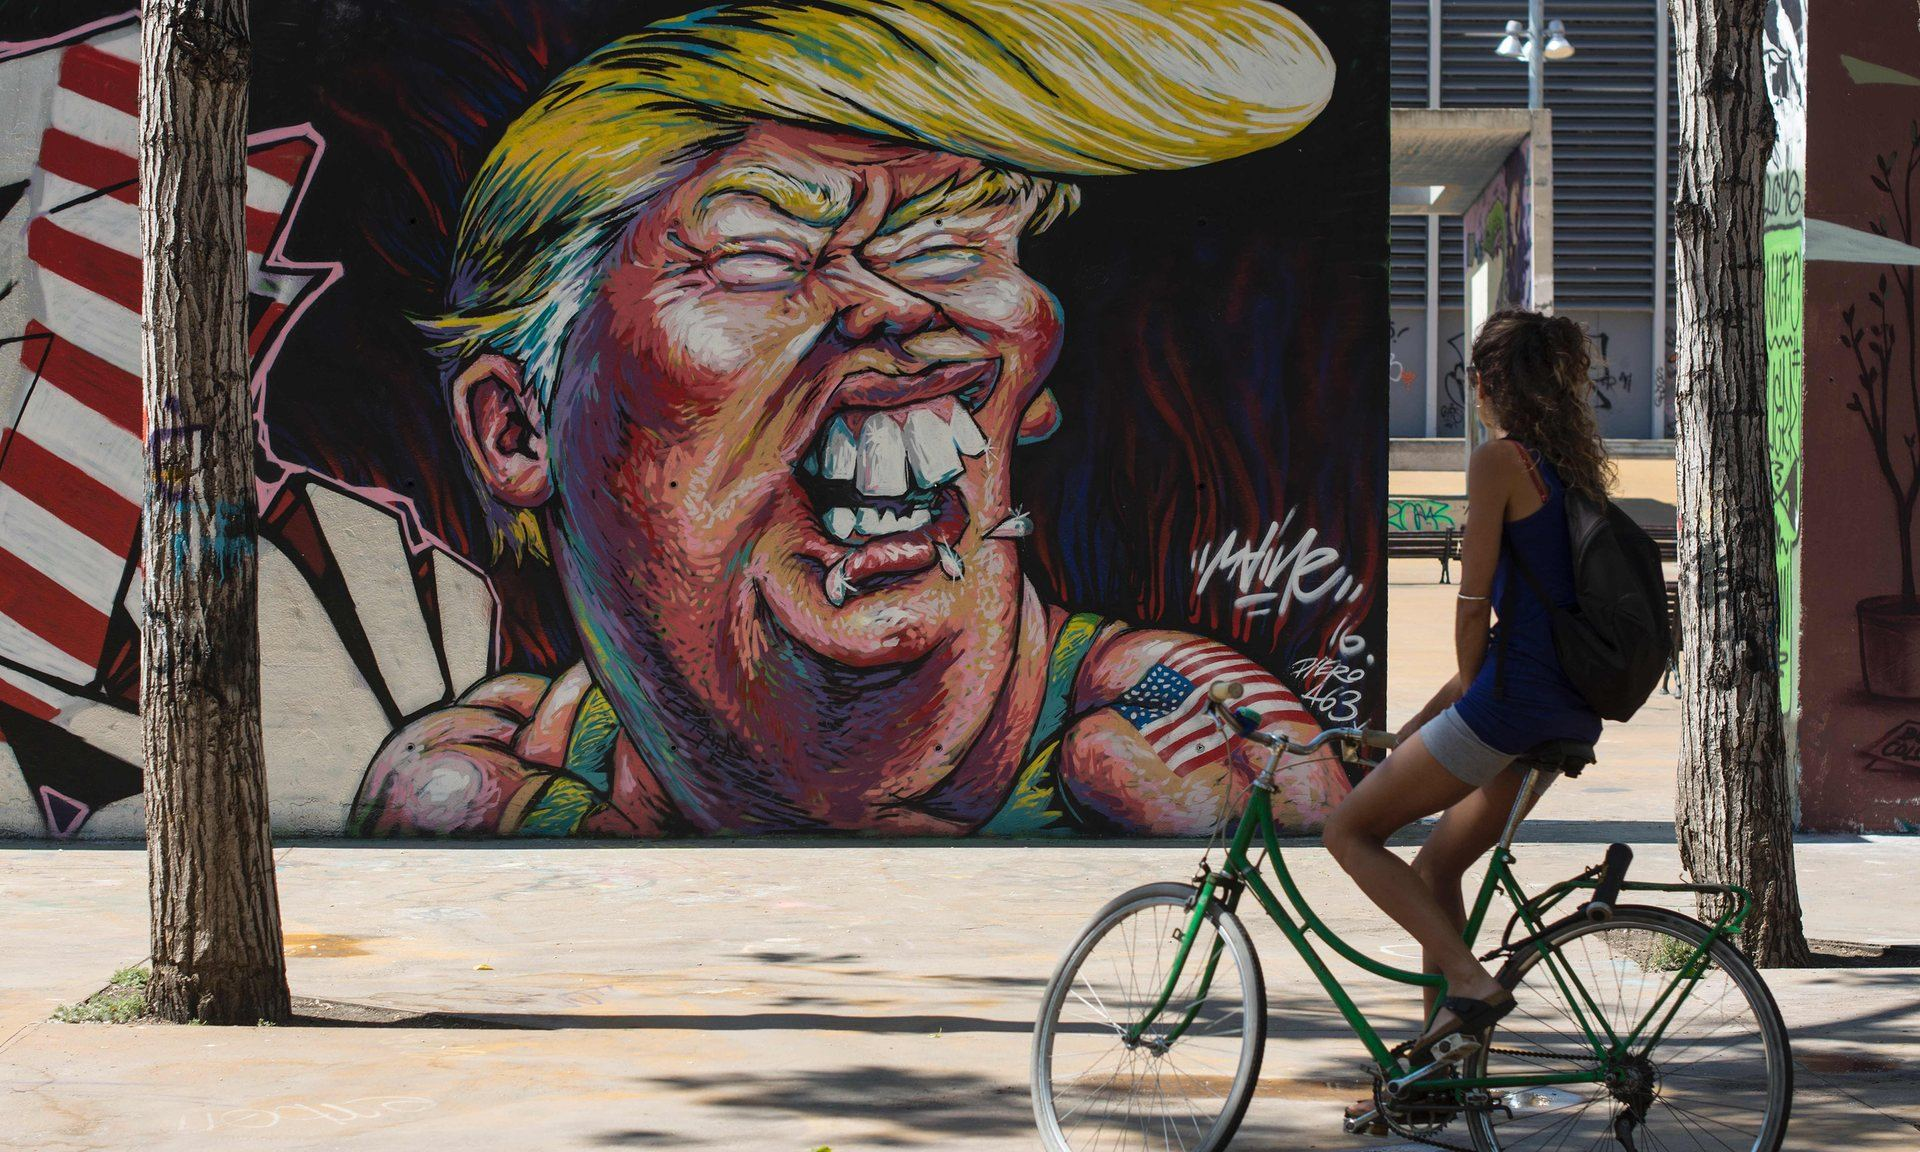 Donald Trump's mix of bombast, menace and bawdy humor echoes that of the comandante. Photograph: Josep Lago/AFP/Getty Images